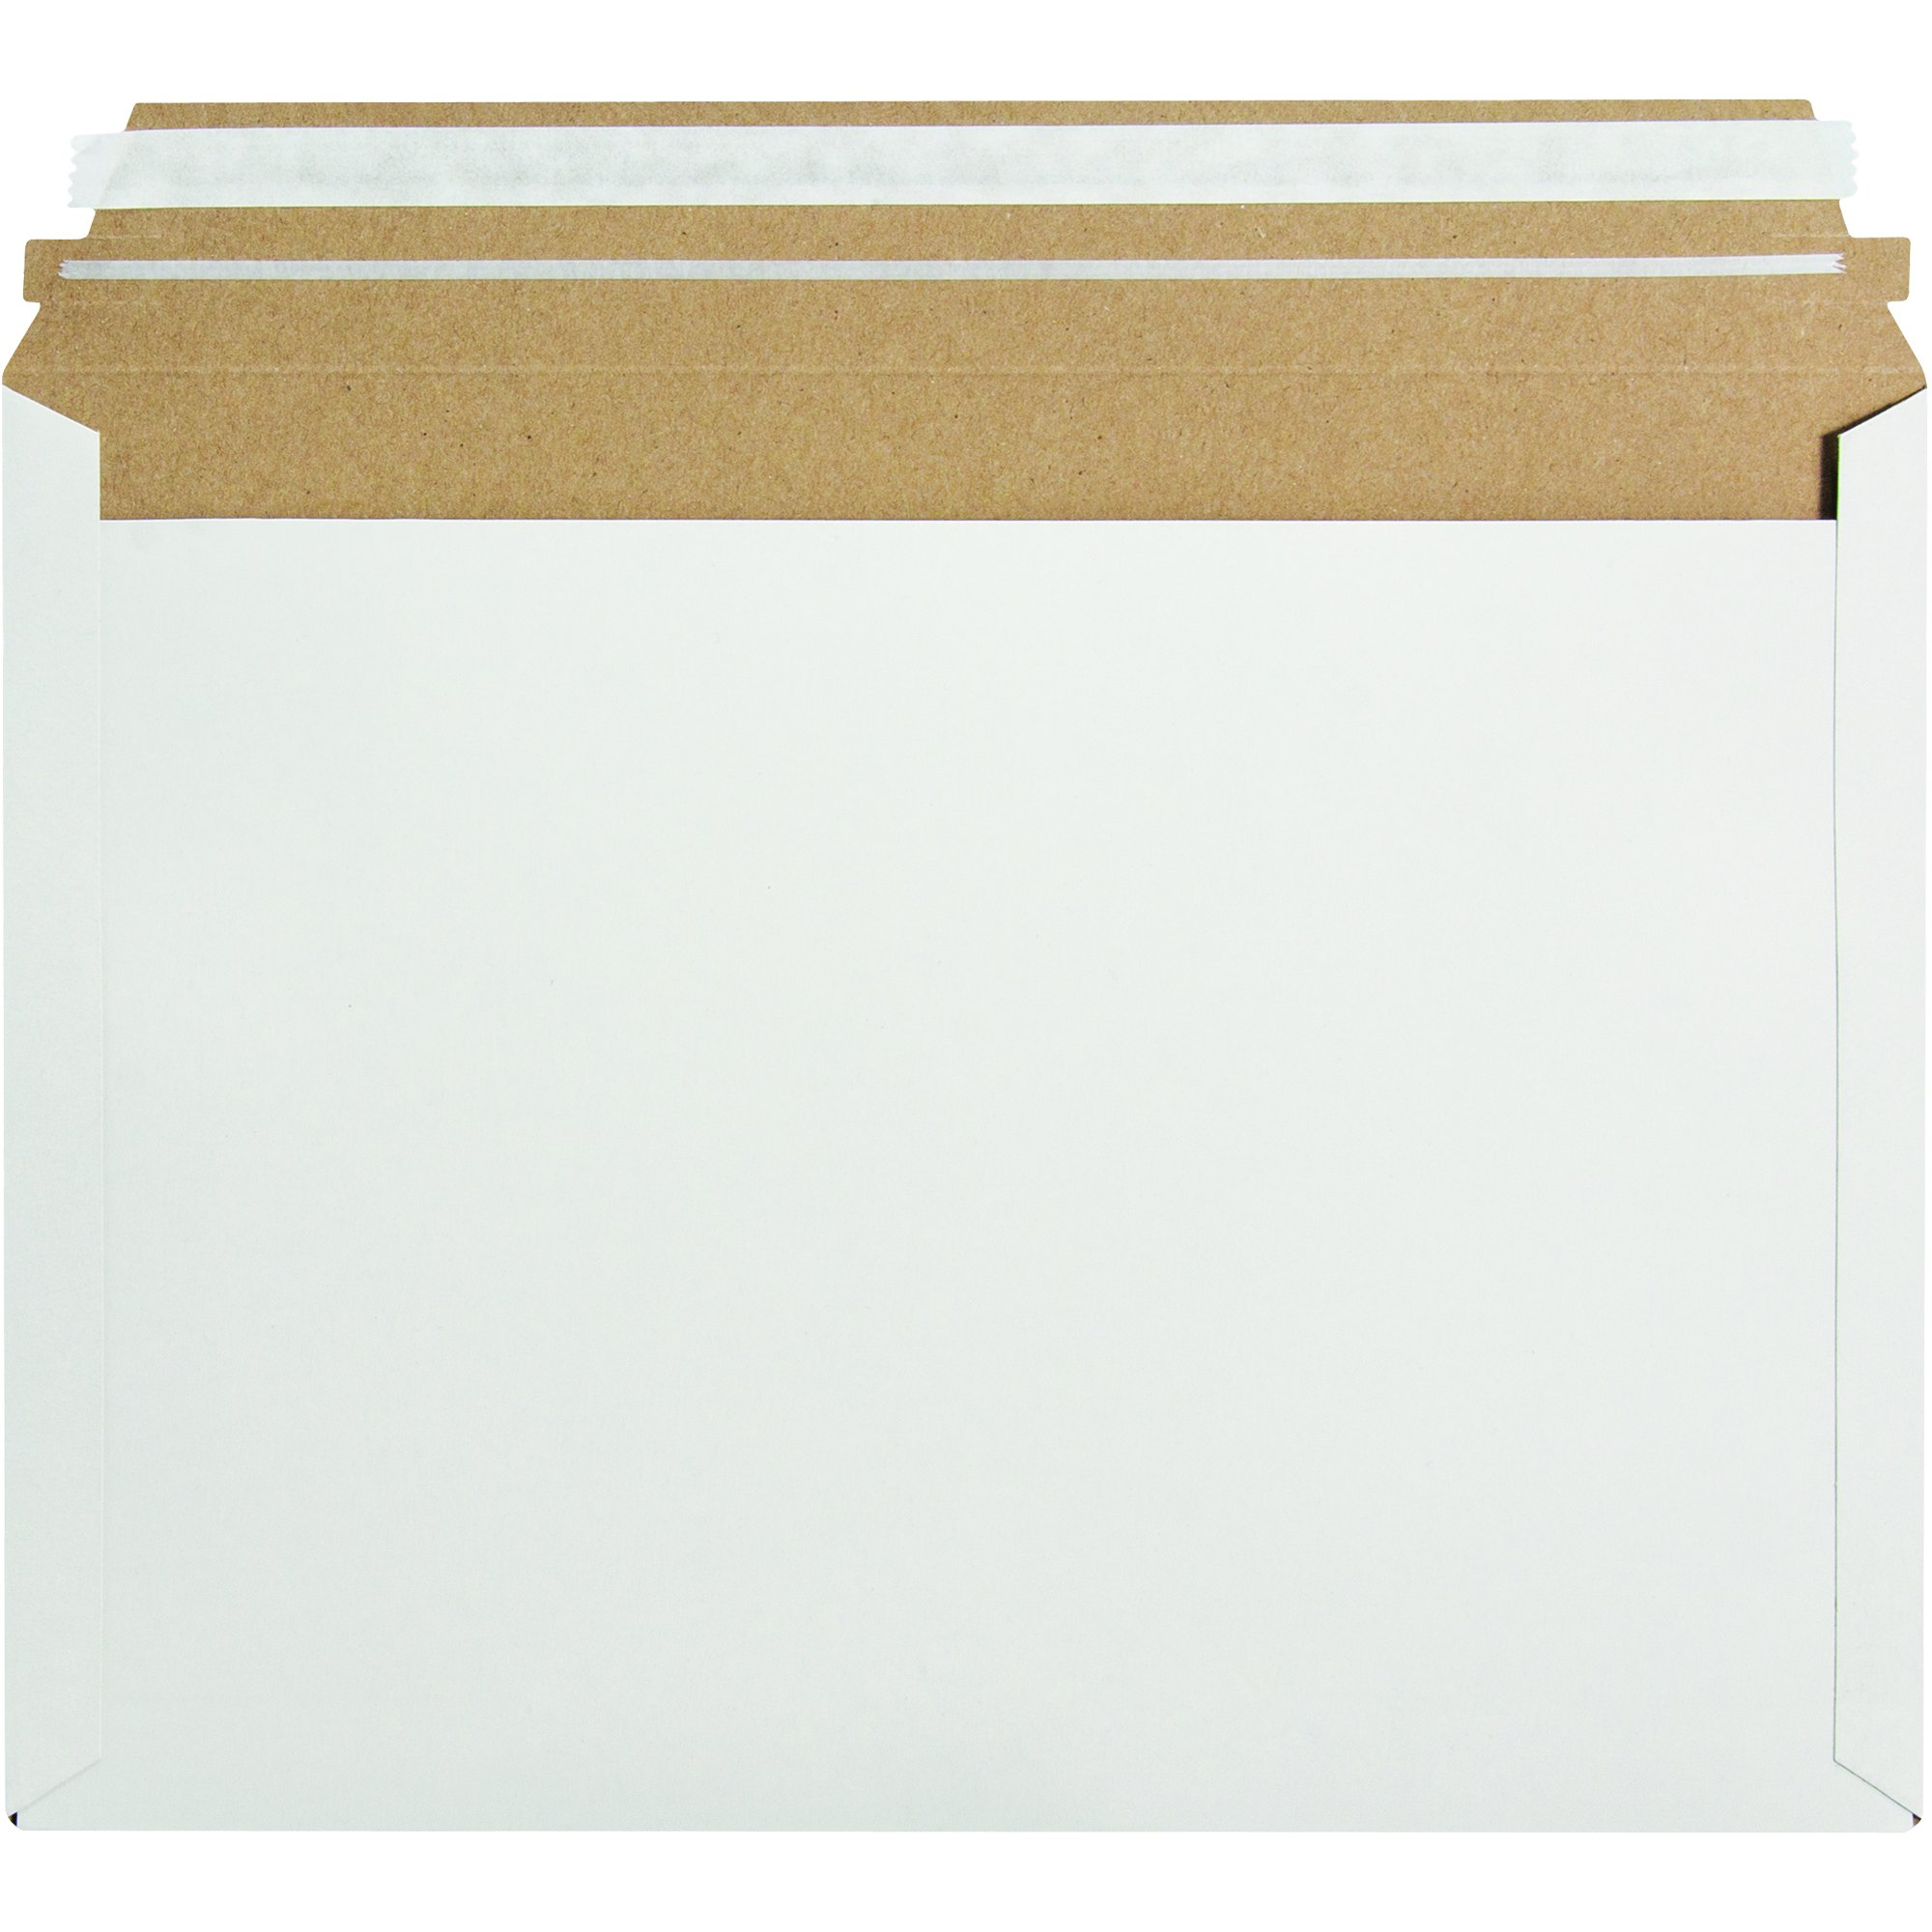 Aviditi RM1EP Express Pouch Mailer, 12 1/2'' x 9 1/2'', 9.5'' Length, 12.5'' Width, White (Pack of 250)